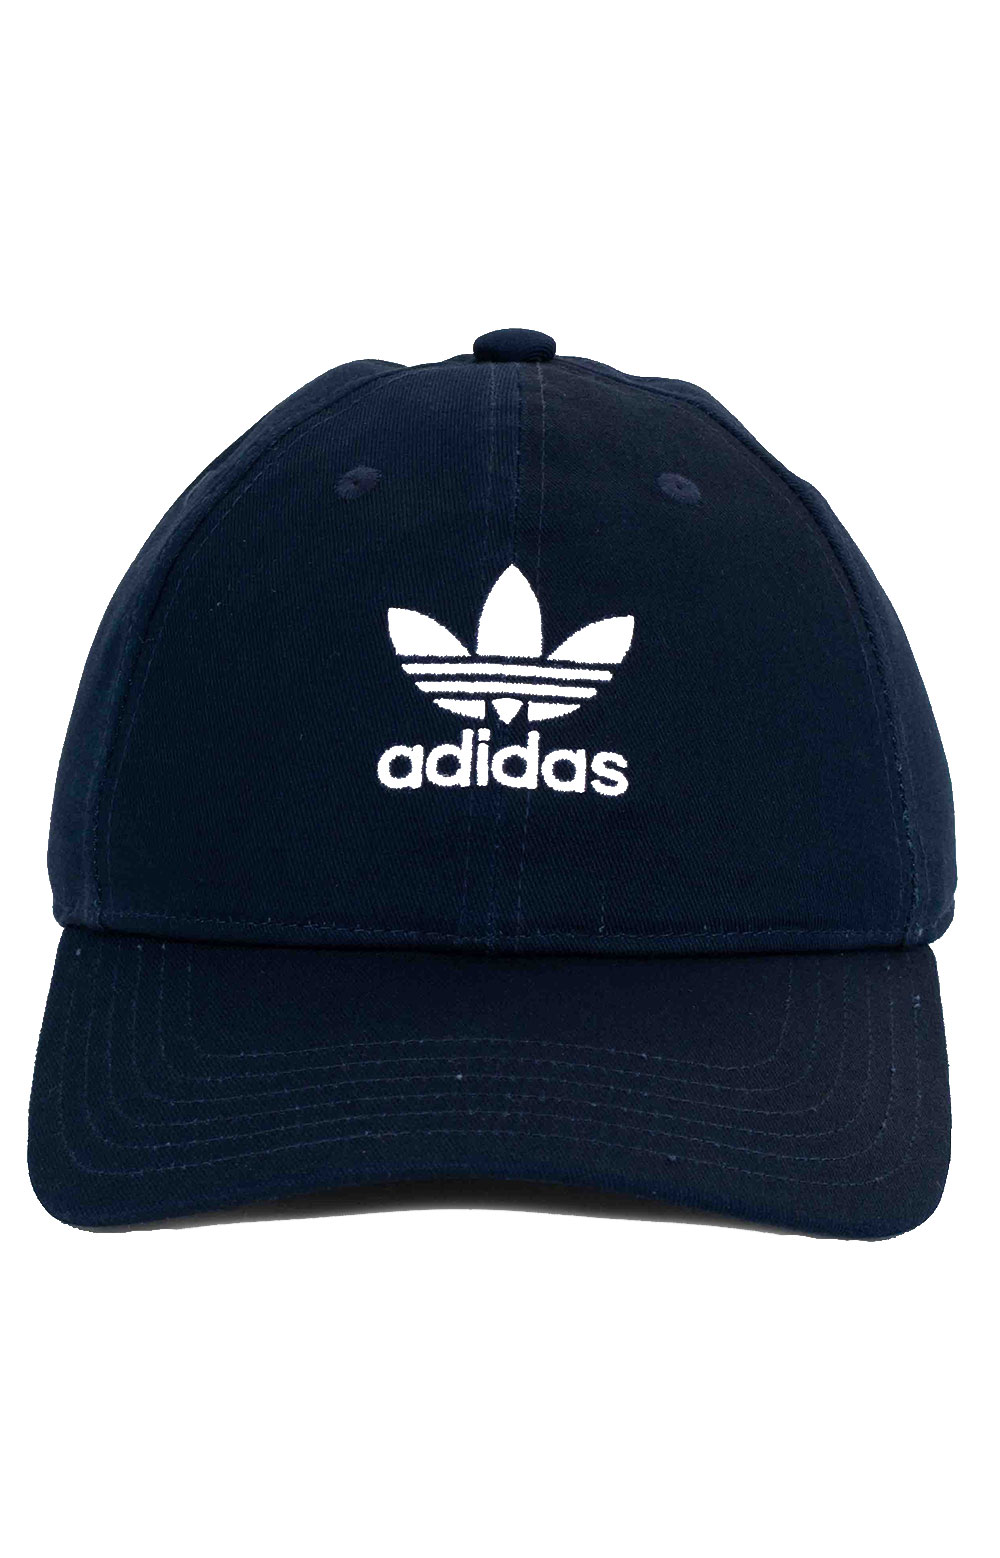 Originals Relaxed Strap-Back Hat - Collegiate Navy 2